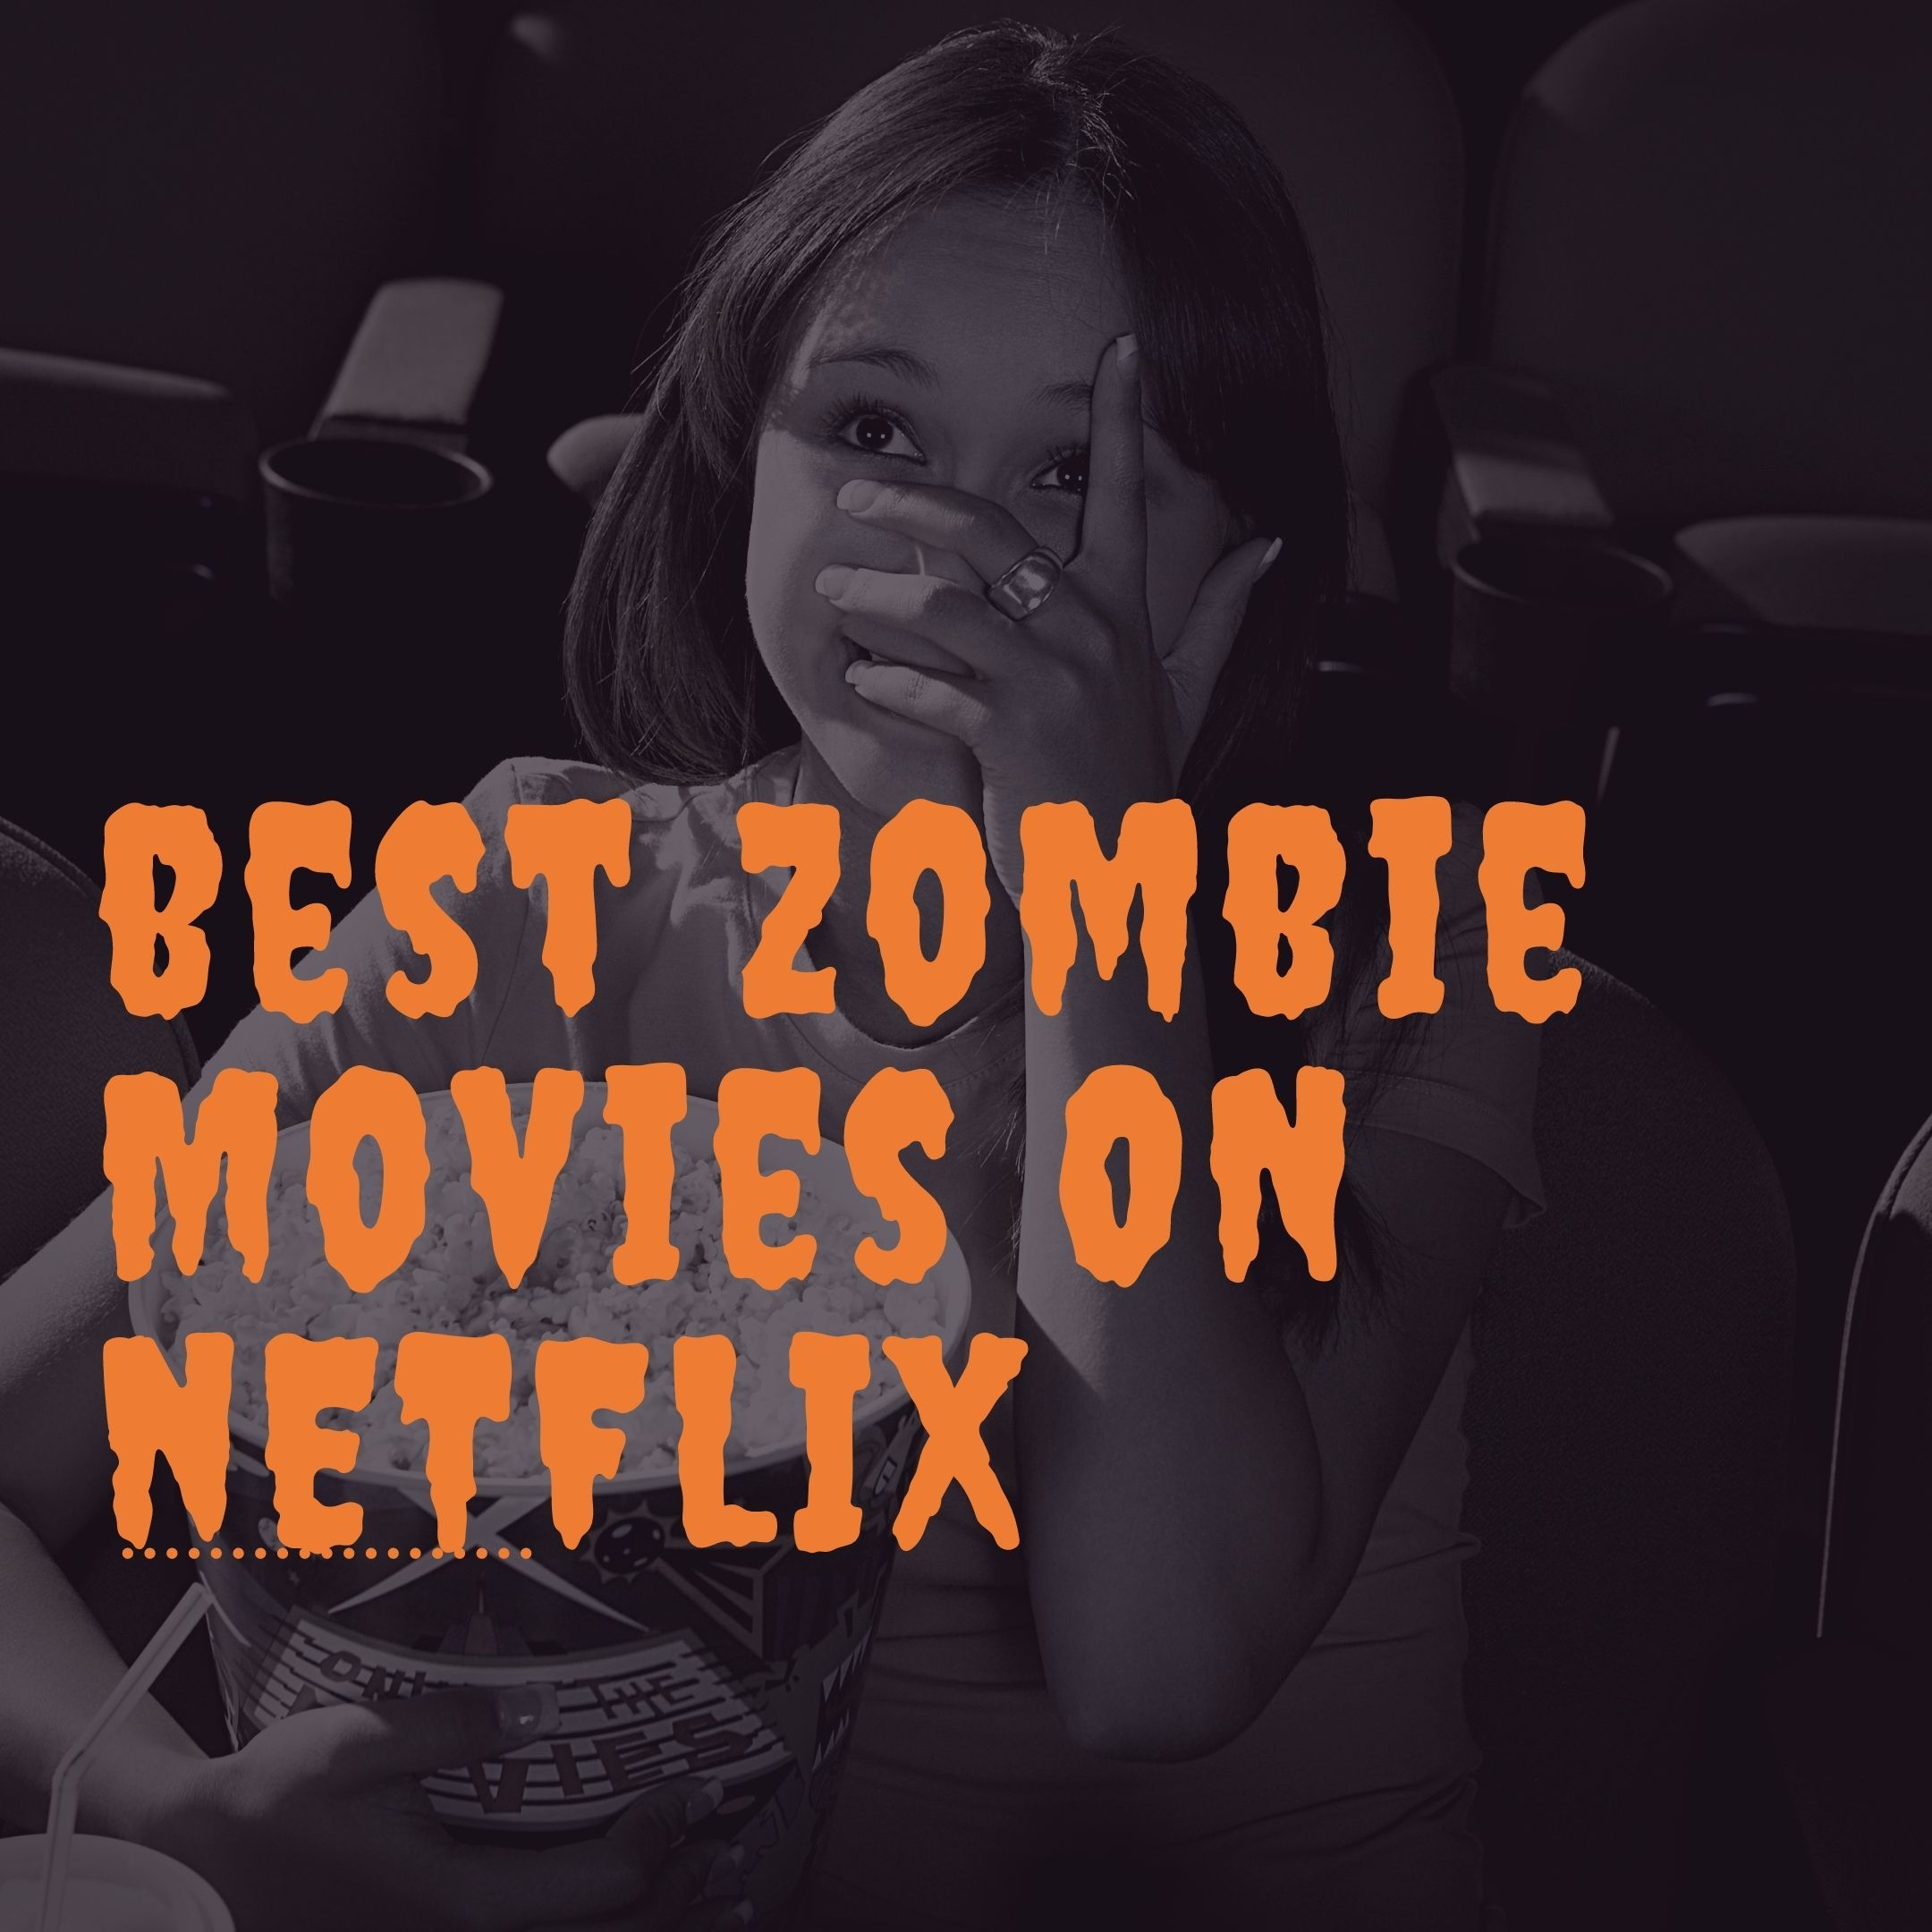 Pin on movies and web series